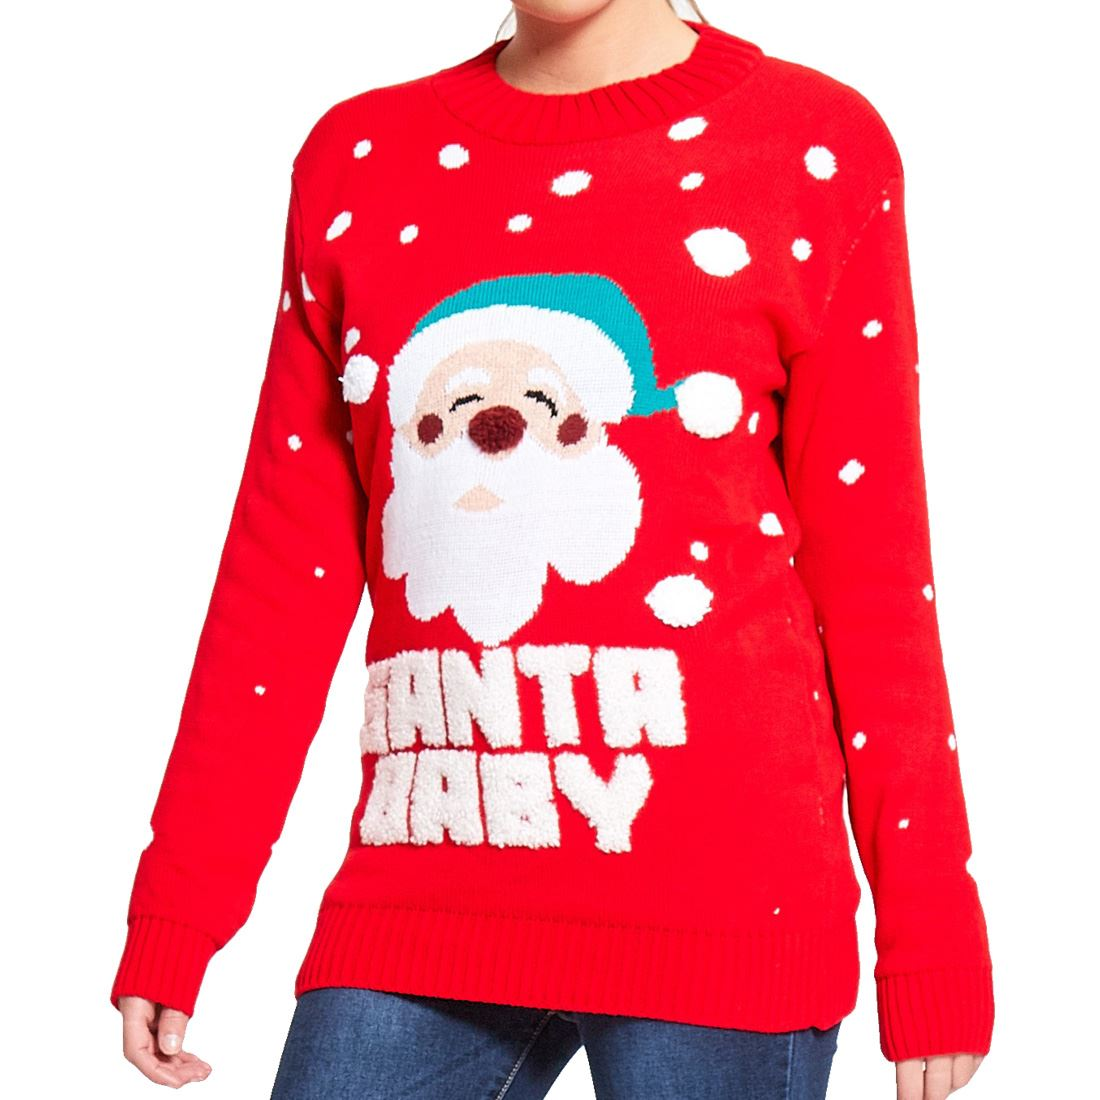 Ladies-Womens-Santa-Baby-Chritmas-Novelty-Knitted-Christmas-Jumper-Sweater-Top